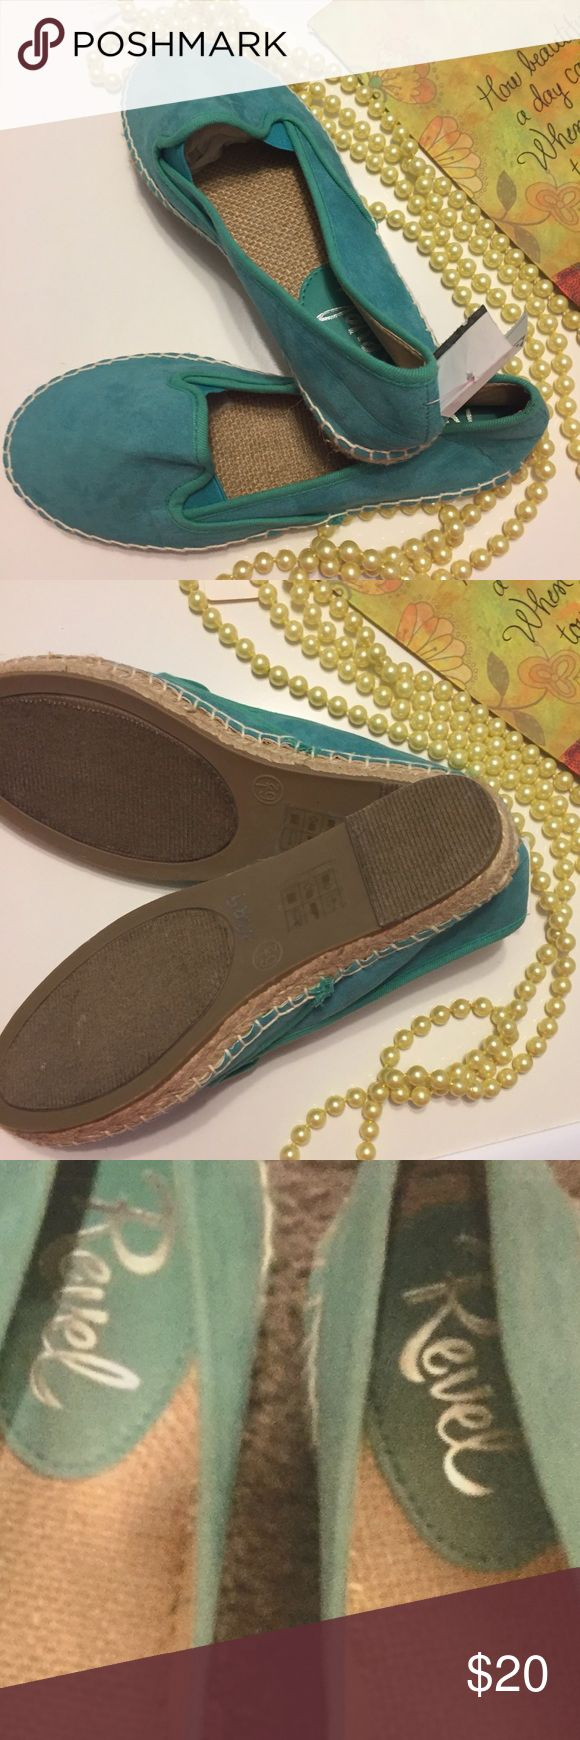 💥NWT Excellent Espadrilles Flats Seafoom Green 💎New with Tags Beautiful Pair of Ladies Espadrilles Flats. Size 6.5M. Stunning Smooth Suede Seafoom Blue/Green Exterior with Traditional Espadrille Style Cream Stitched Comfortable Canvas Interior. Wonderfully stylish slip-ons at an awesome bargain! (Retail $50 plus tax). 😊No-Smoking Home 👍Great Posh Customer Feedback 📦Fast Shipping! ❤️Posh Ambassador! Shop with Confidence @jhp511 🌠🌠🌠🌠🌠 Revel Shoes Espadrilles